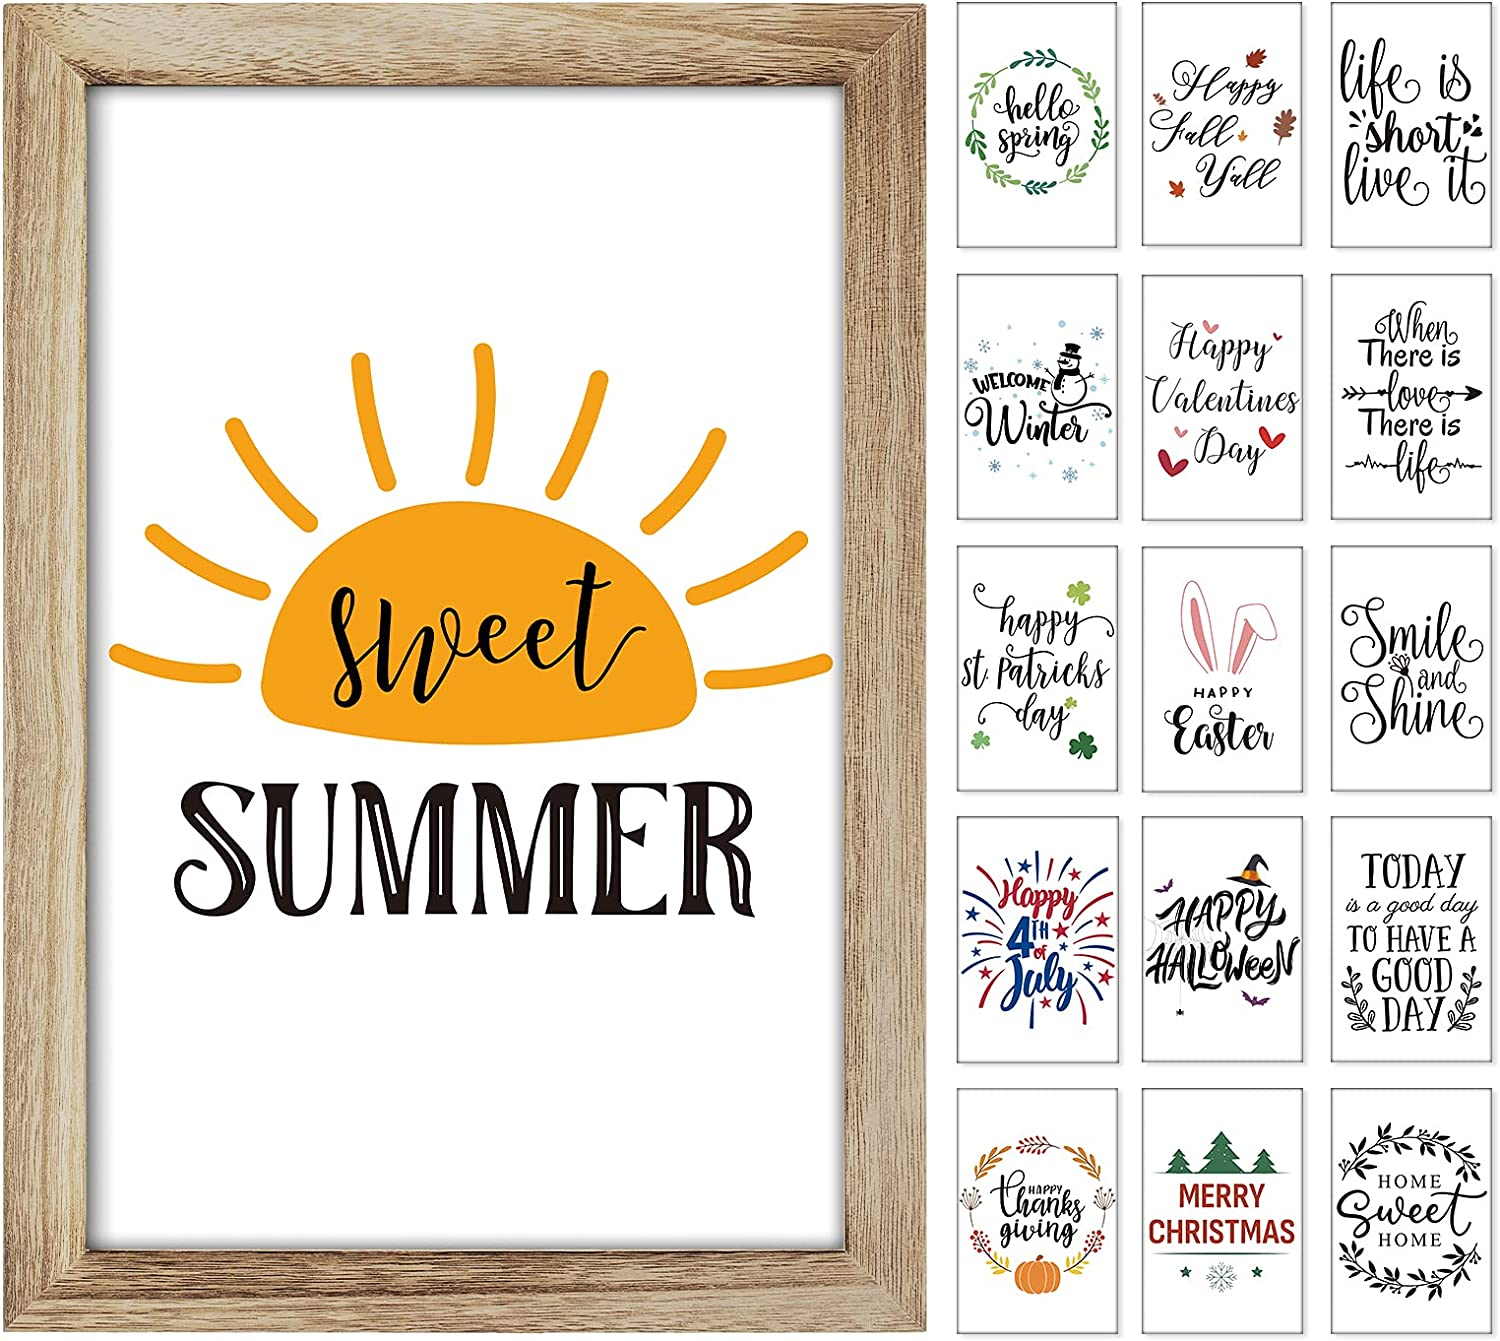 """Farmhouse Wall Decor Signs with 16 Interchangeable Sayings, Easy to Hang 11x16"""" Large Rustic Wood Picture Frame (with Glass) with 16 Designs for Seasonal and Holiday Home Decor, Summer Decorations for Home"""